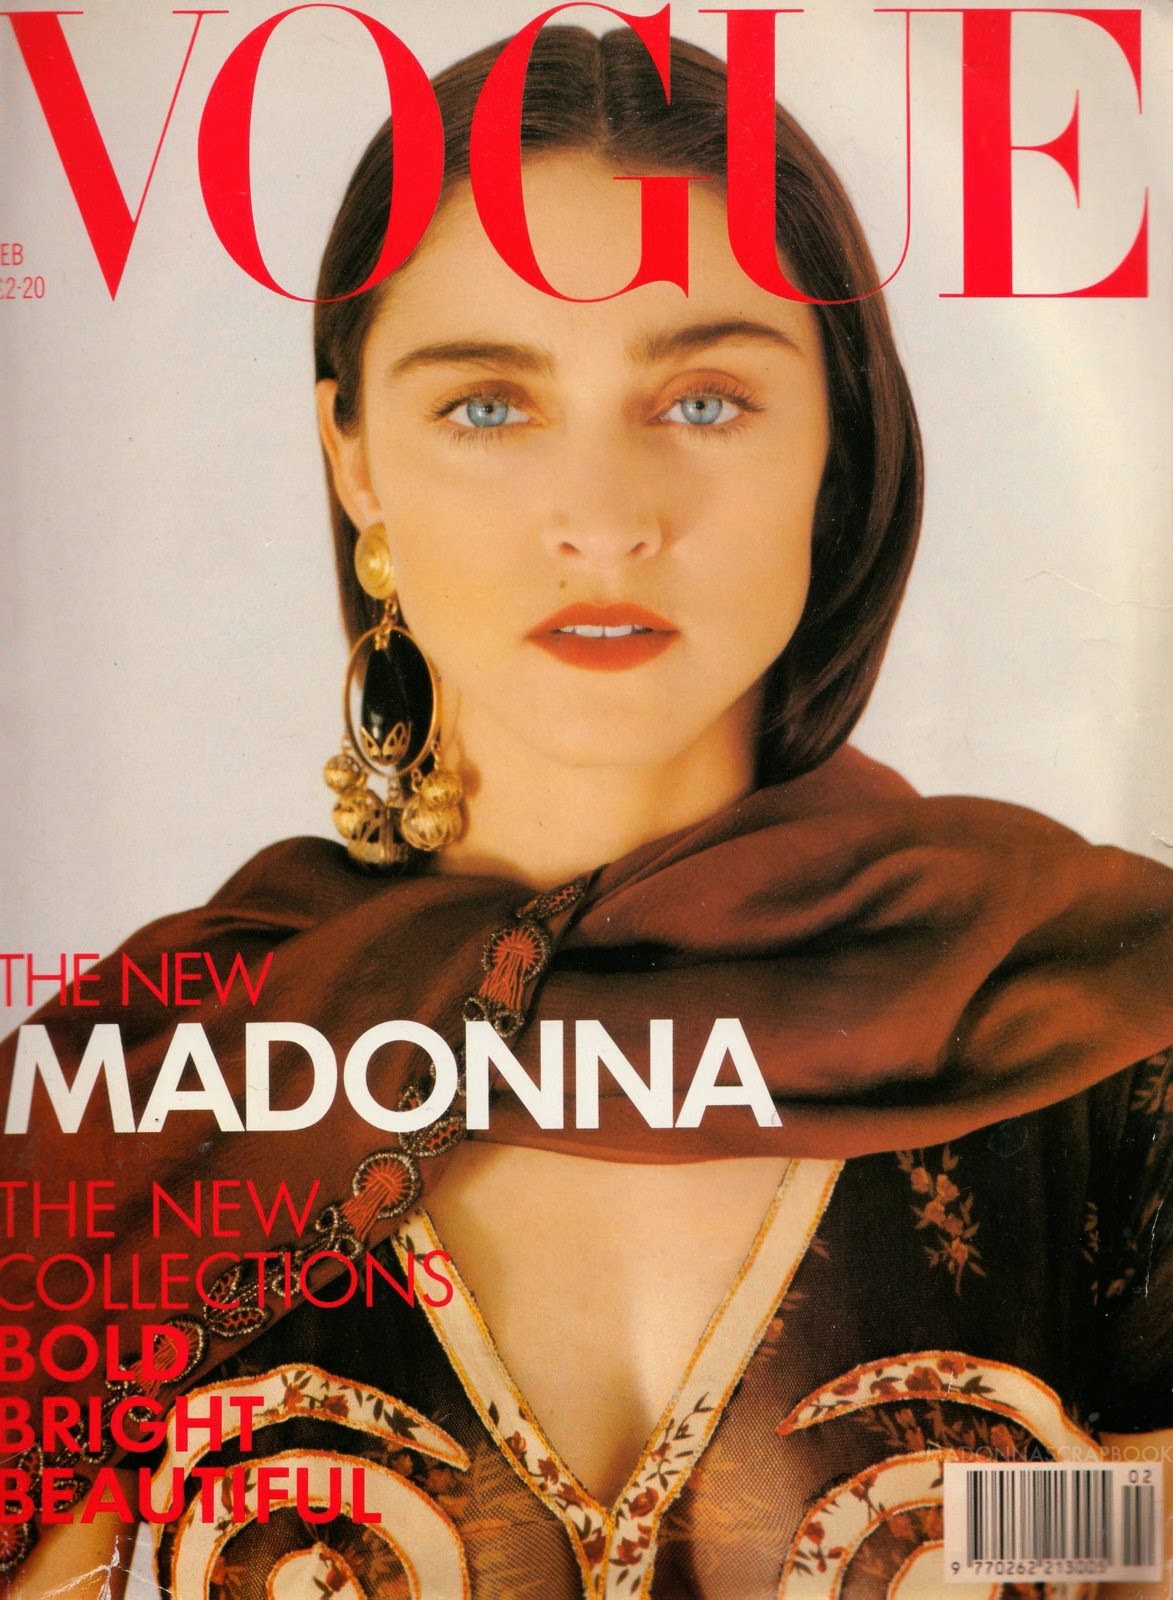 vogue madonna 1989 british february pud magazine covers whacker years